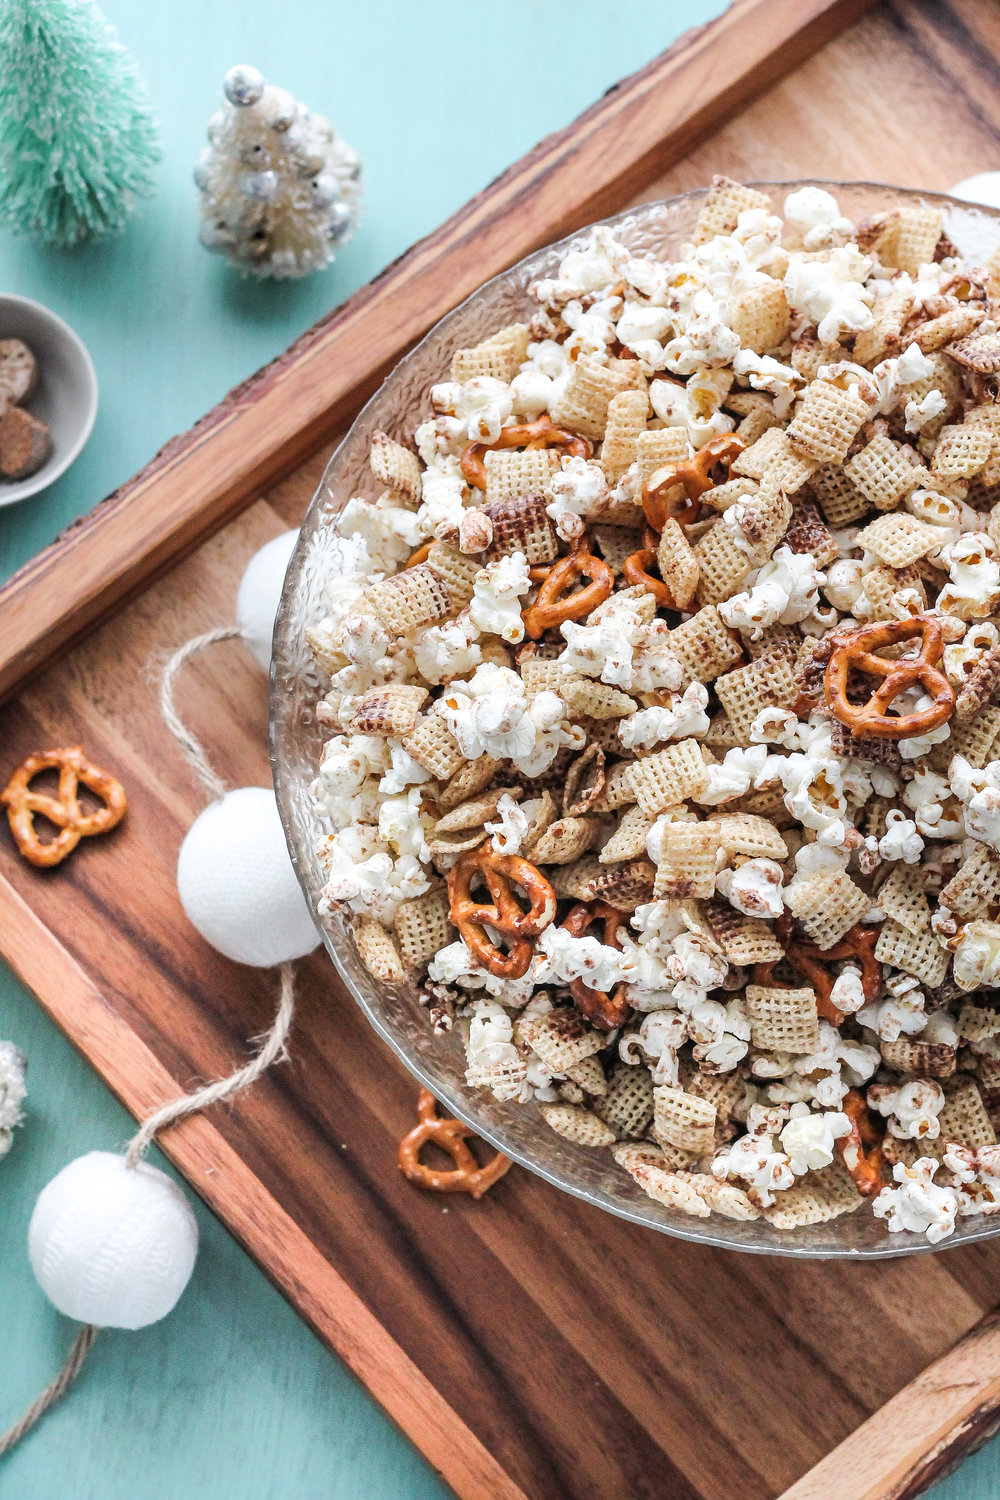 Hot cocoa snack mix makes the perfect snack for a cozy, Christmas movie night!  Find the recipe on www.pedanticfoodie.com!!